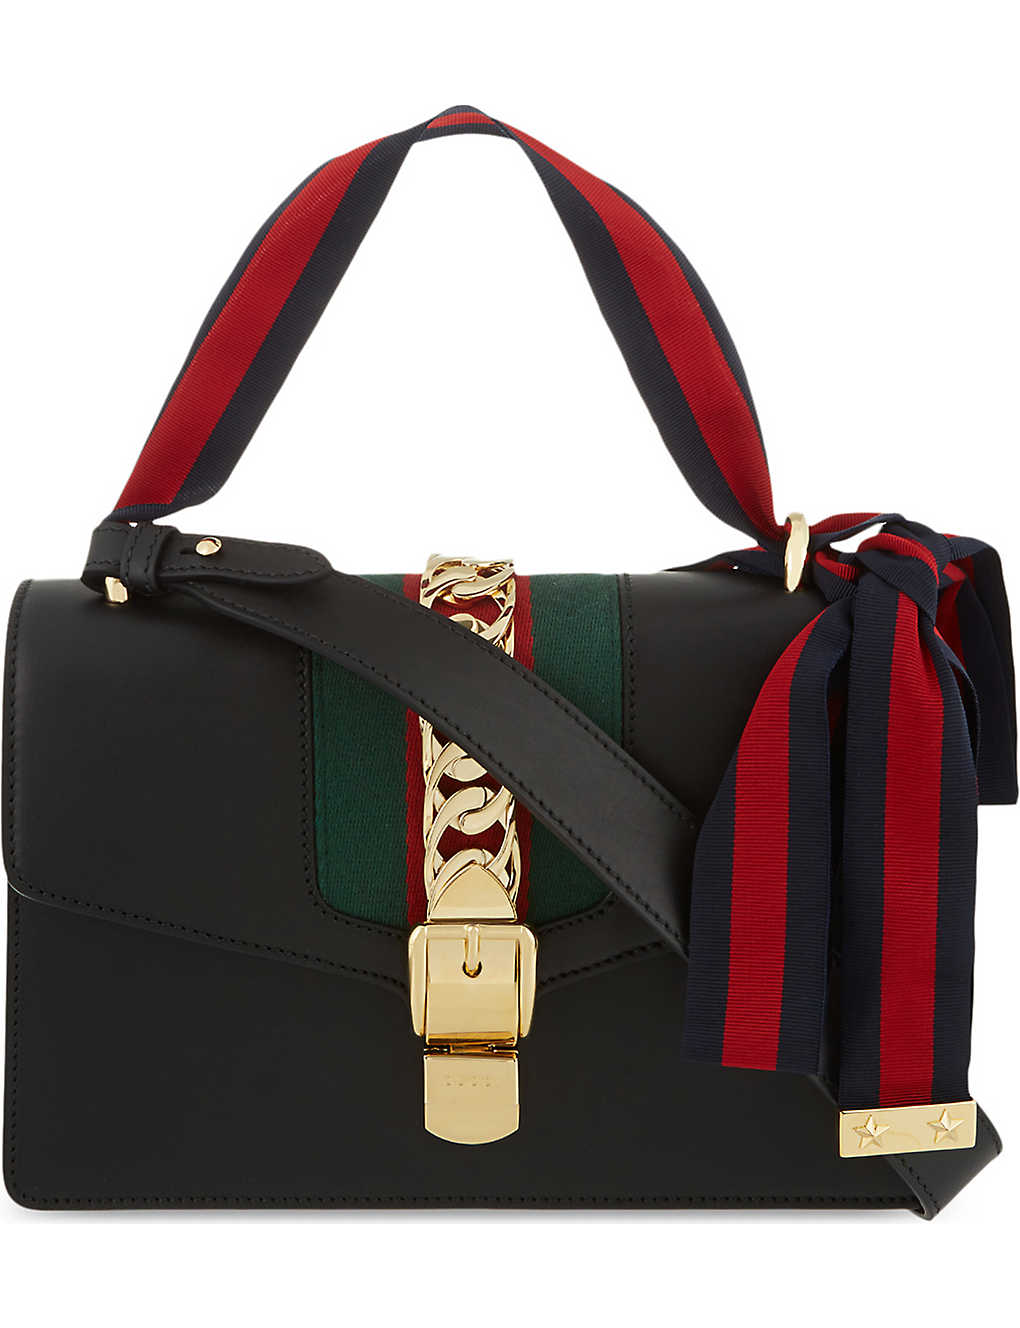 3faf31b04d36 GUCCI - Sylvie leather shoulder bag